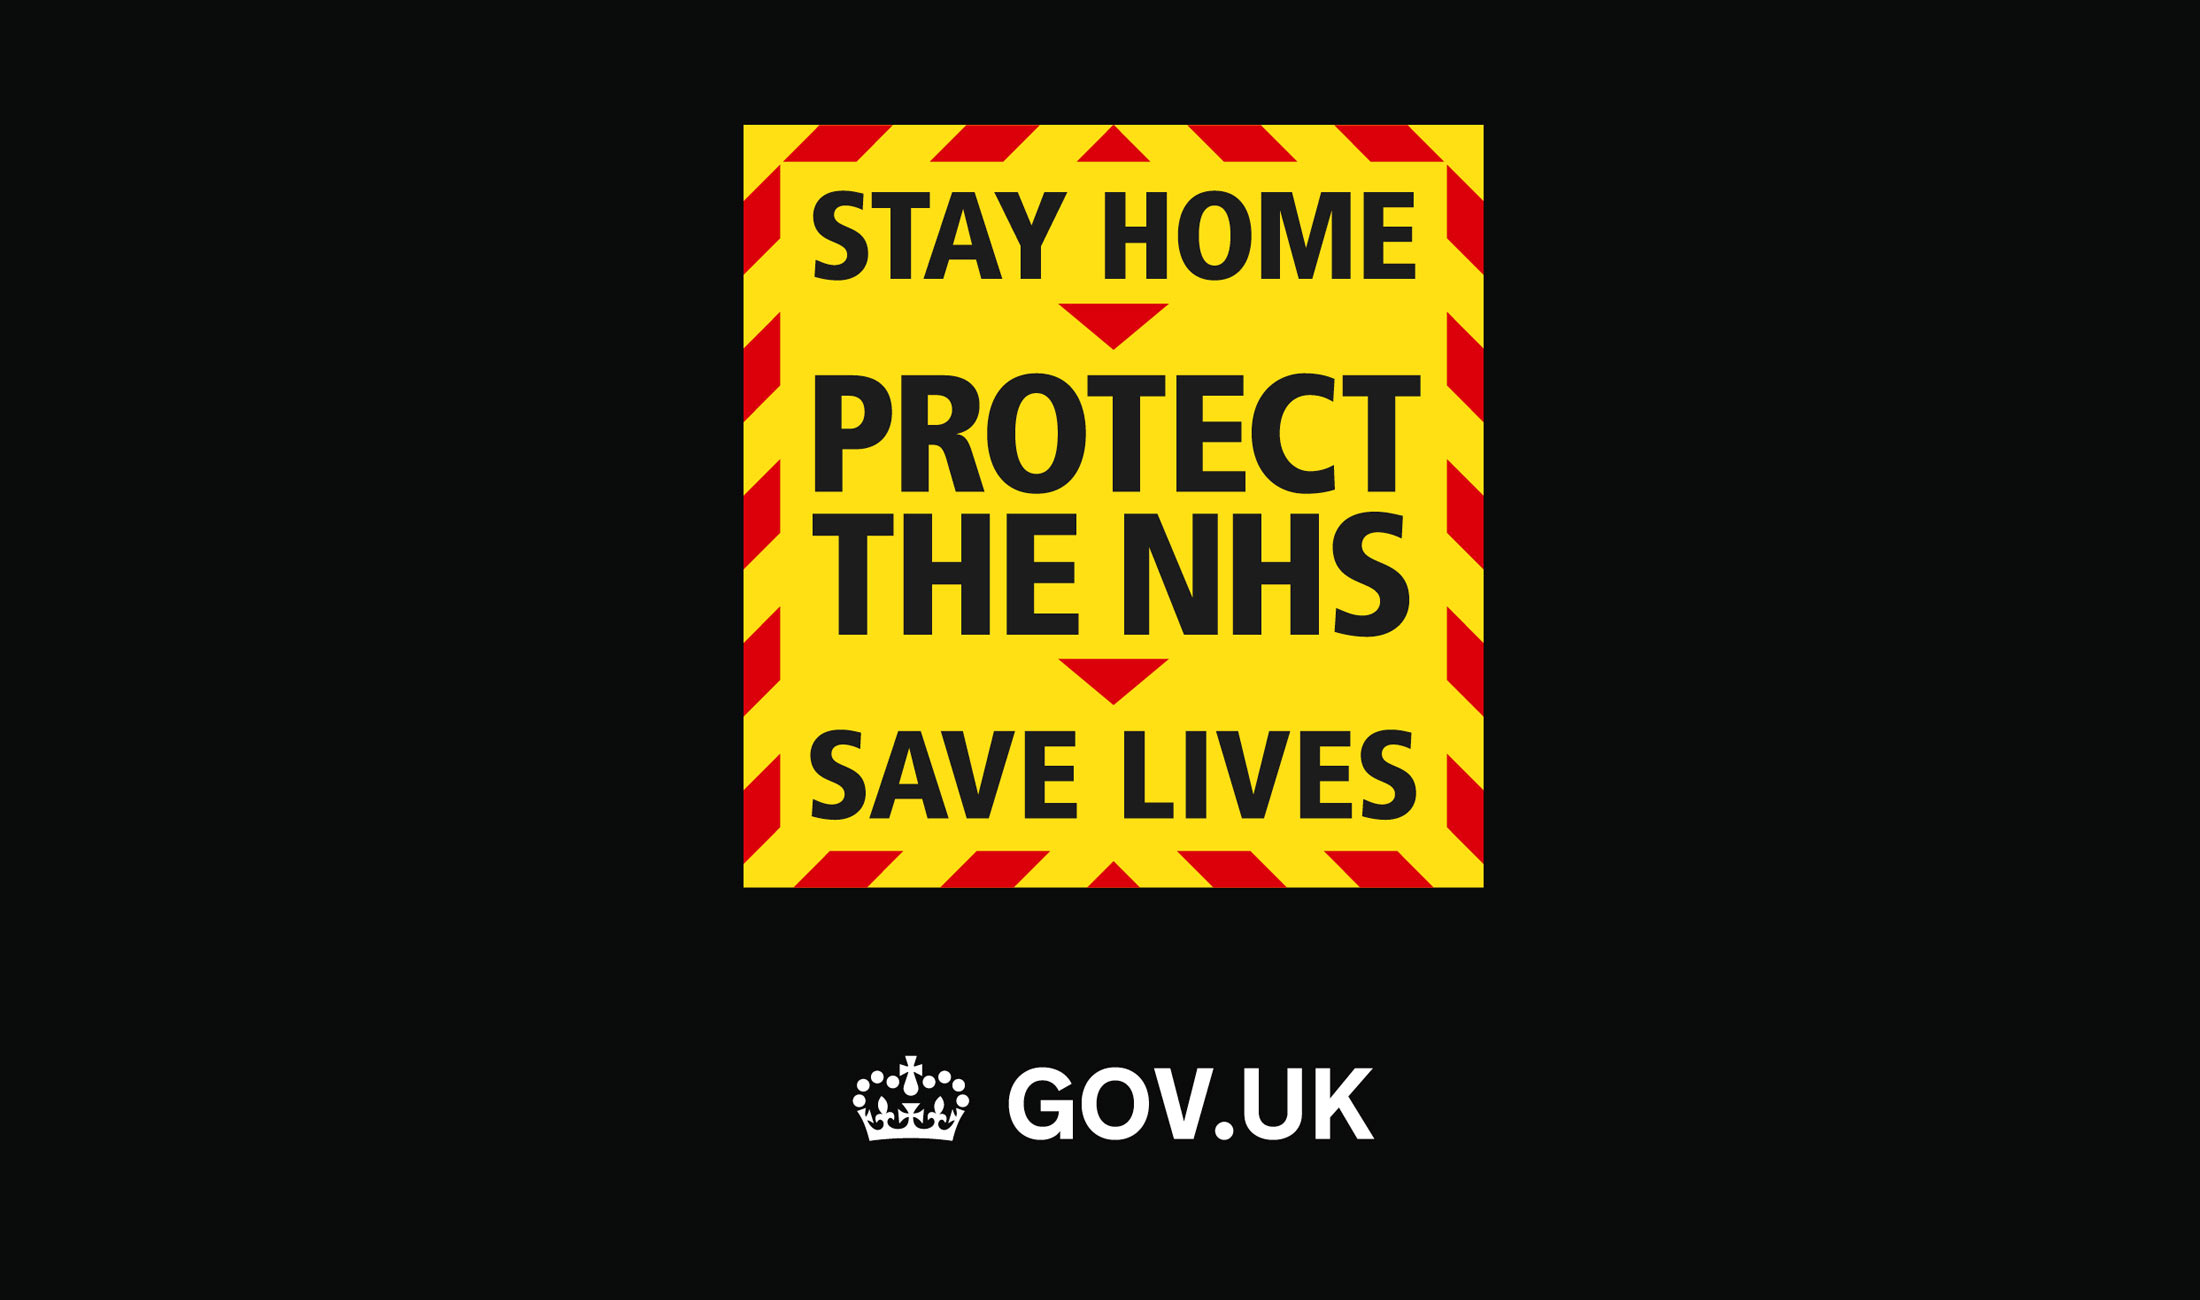 Stay Home, Protect The NHS, Save Lives.